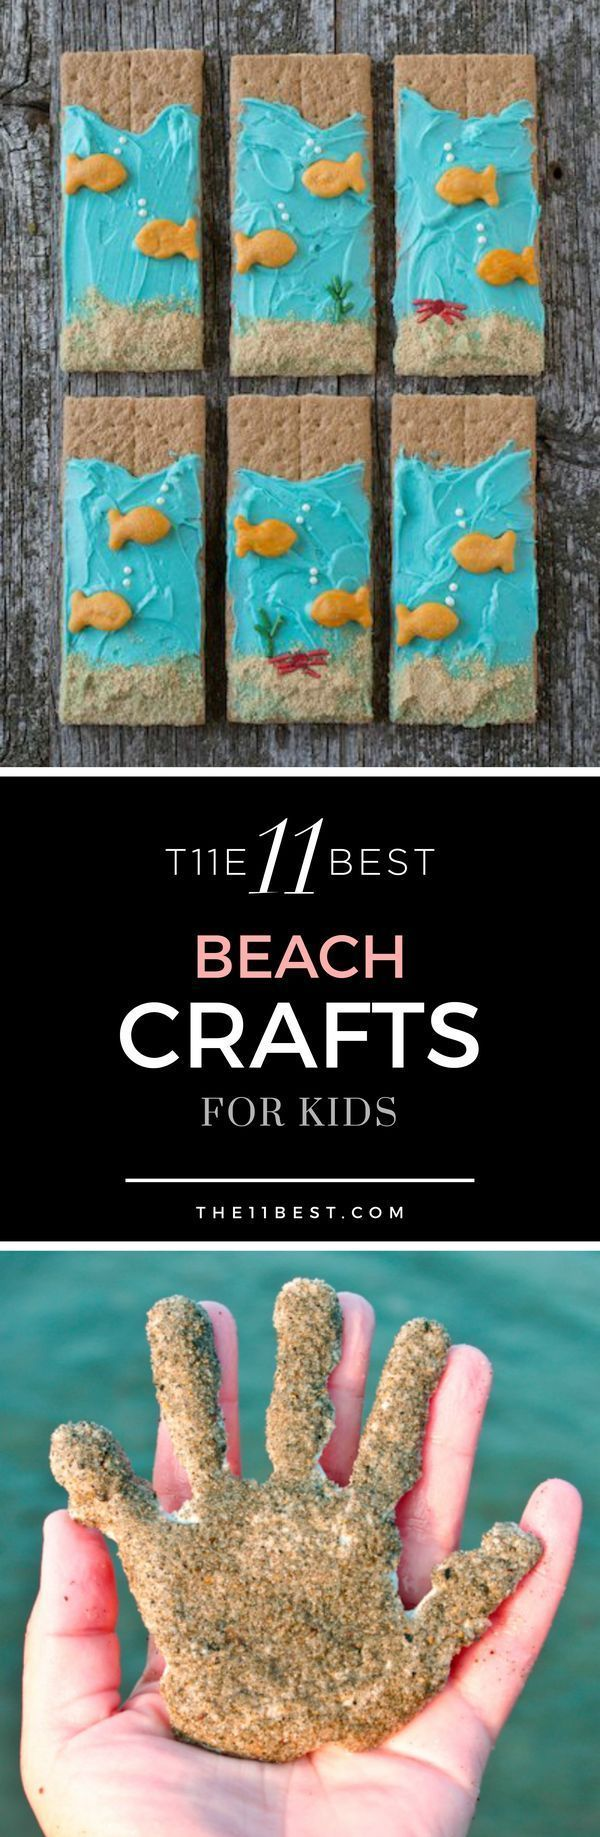 The 11 Best Beach Crafts for Kids - Tap the link to see the newly released survival collections for tough survivors out there! :D